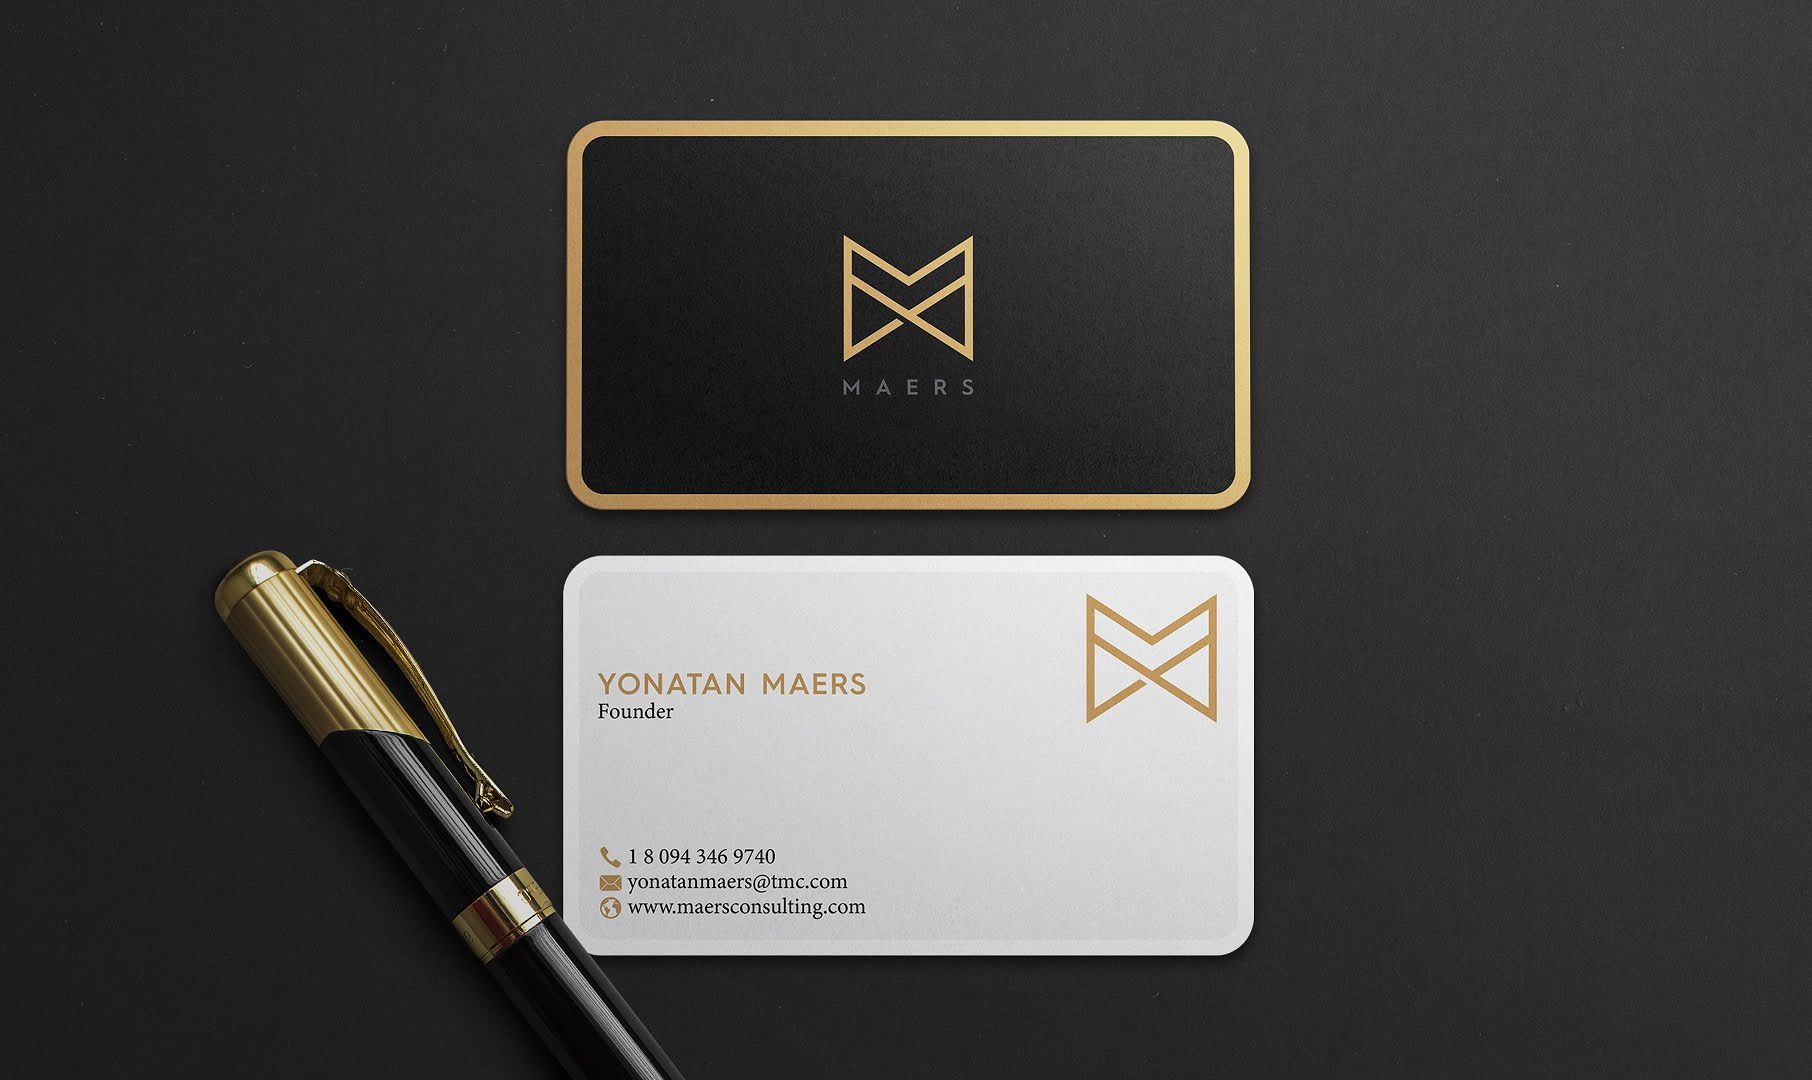 I Will Design a Great Business Card